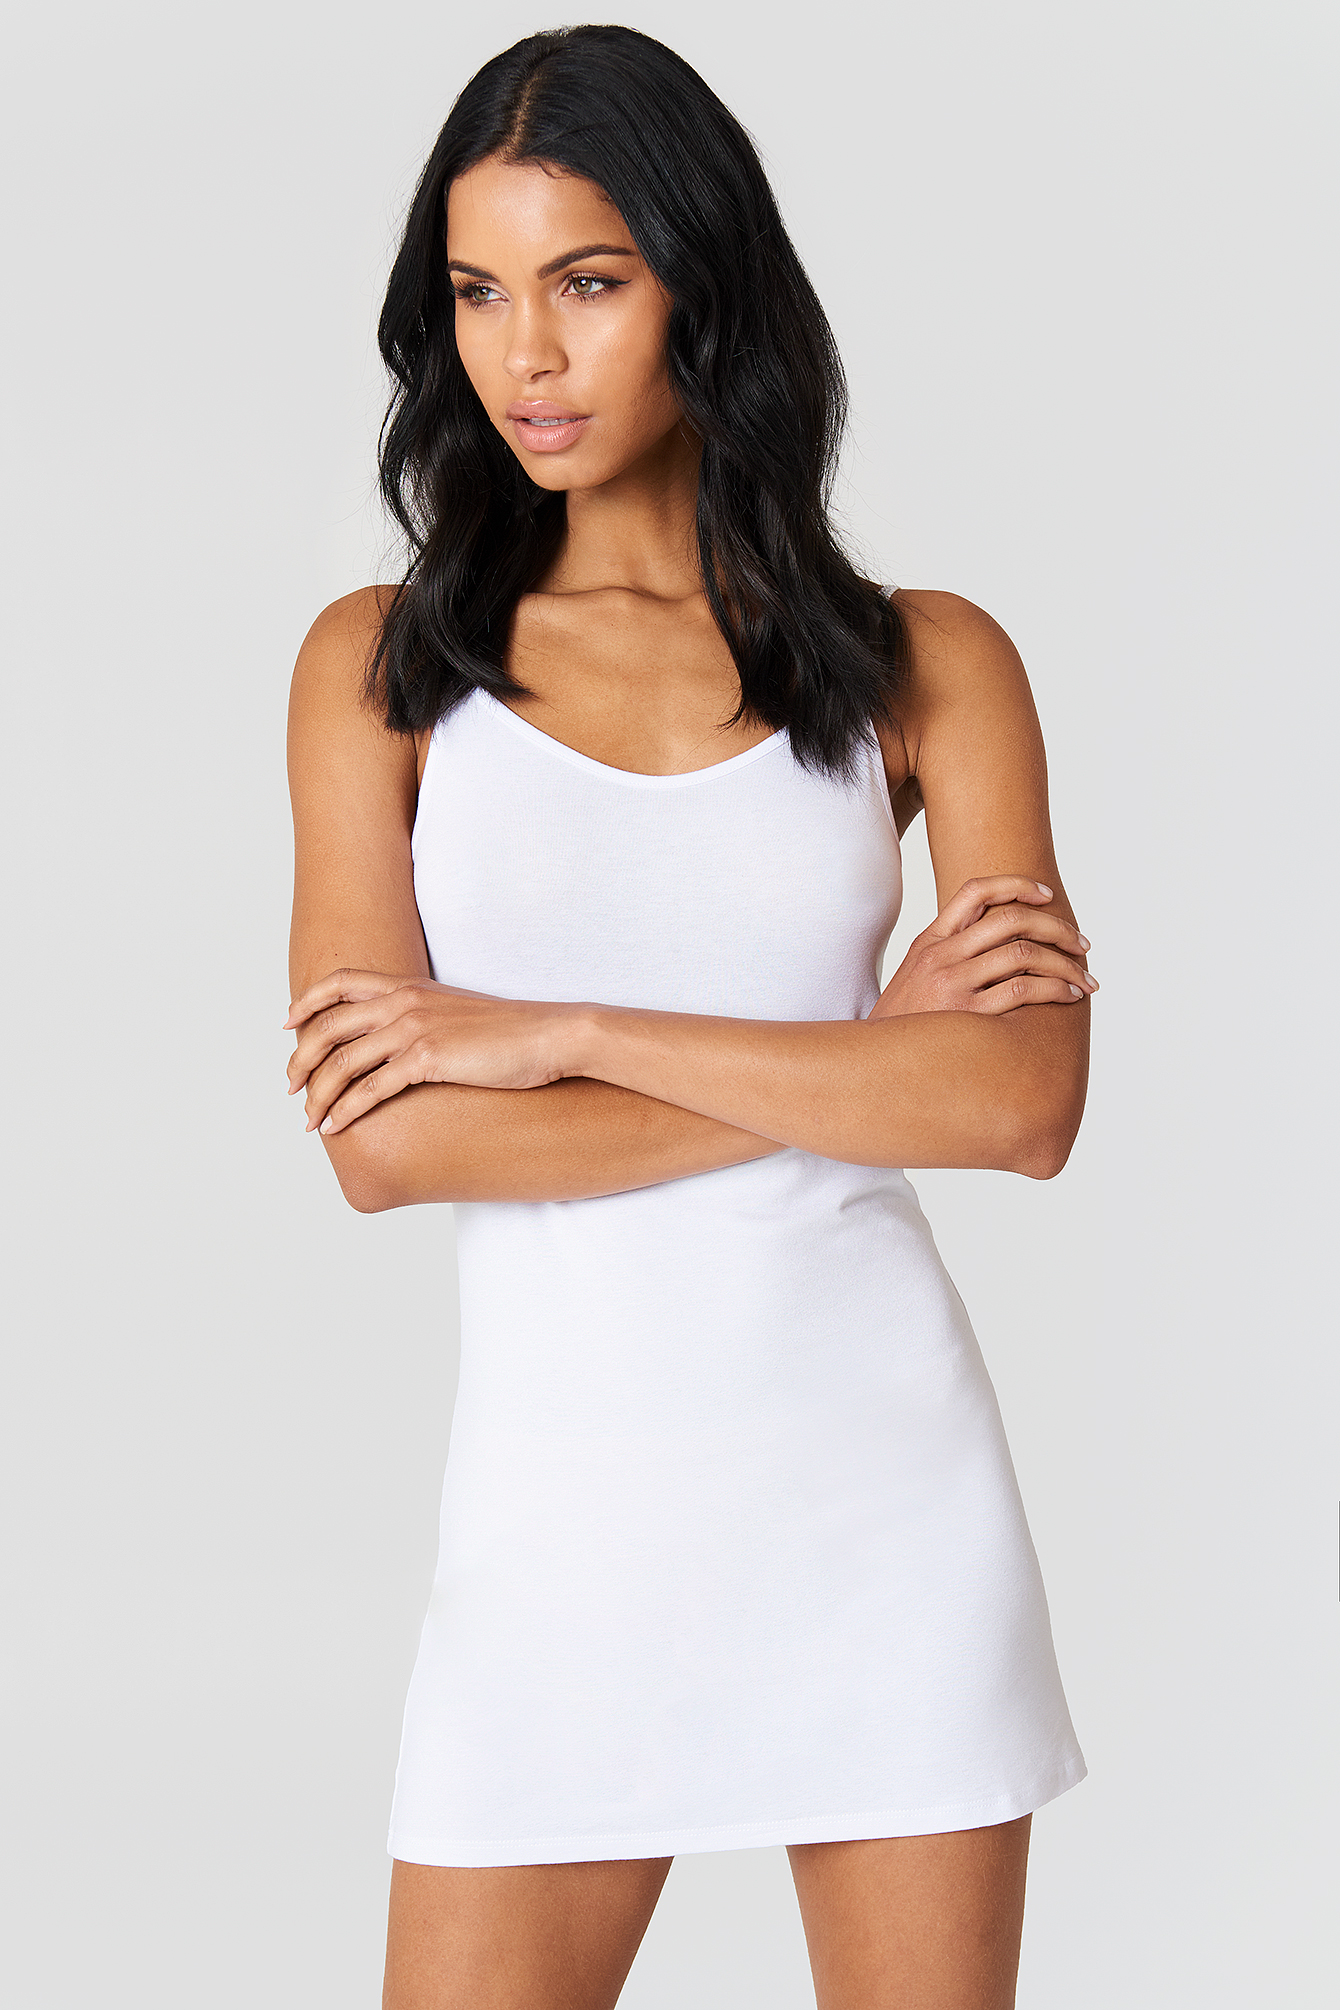 Casual White Cocktail Dresses